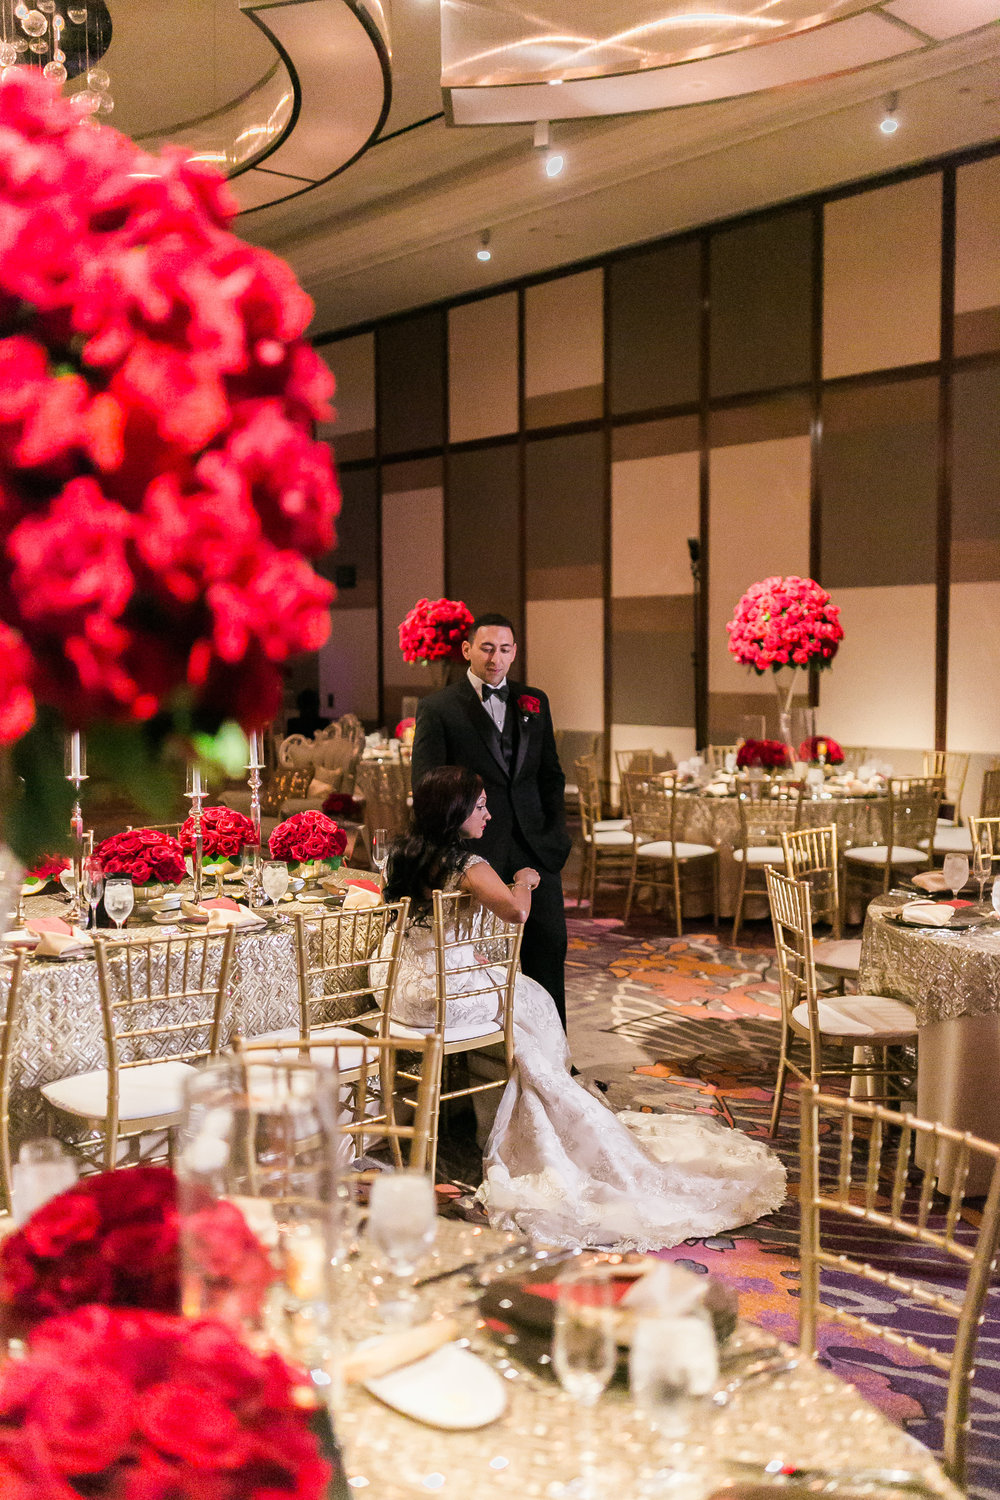 Bride and groom framed by red roses.  Las Vegas Wedding Planner Andrea Eppolito shares this multicultural wedding.  Photo by J.Anne Photography. Wedding at Mandarin Oriental Las Vegas.  Decor by DBD Vegas.